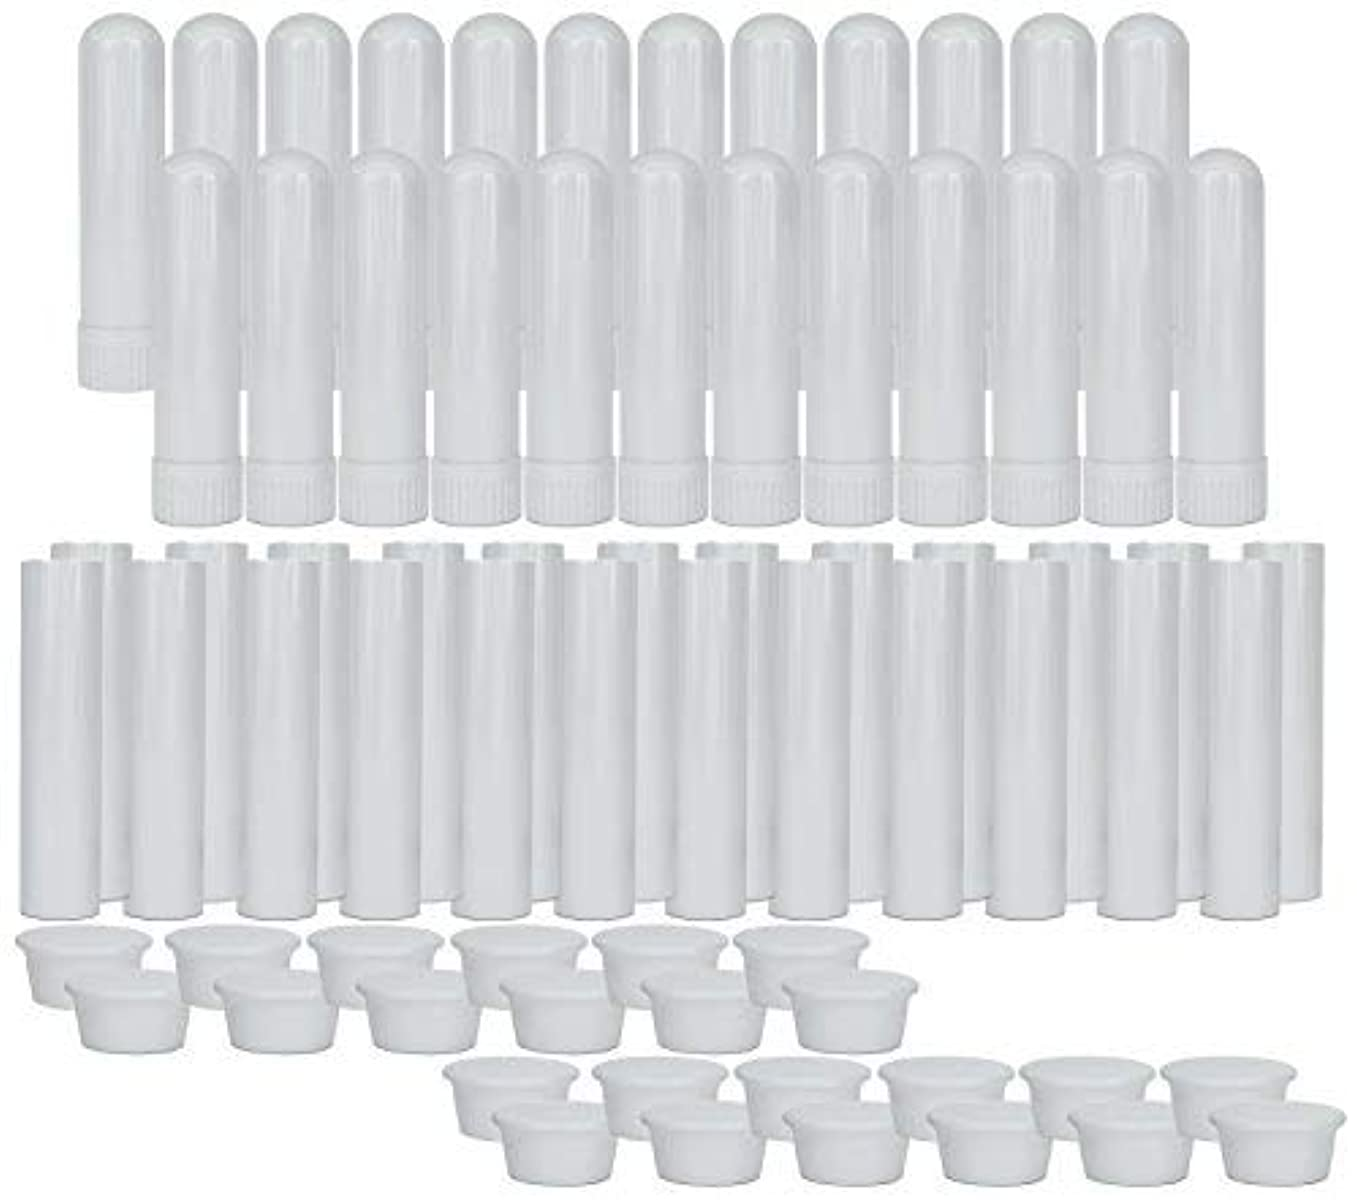 砲撃貞羽Essential Oil Aromatherapy Blank Nasal Inhaler Tubes (24 Complete Sticks), Empty Nasal Inhalers for Essential...